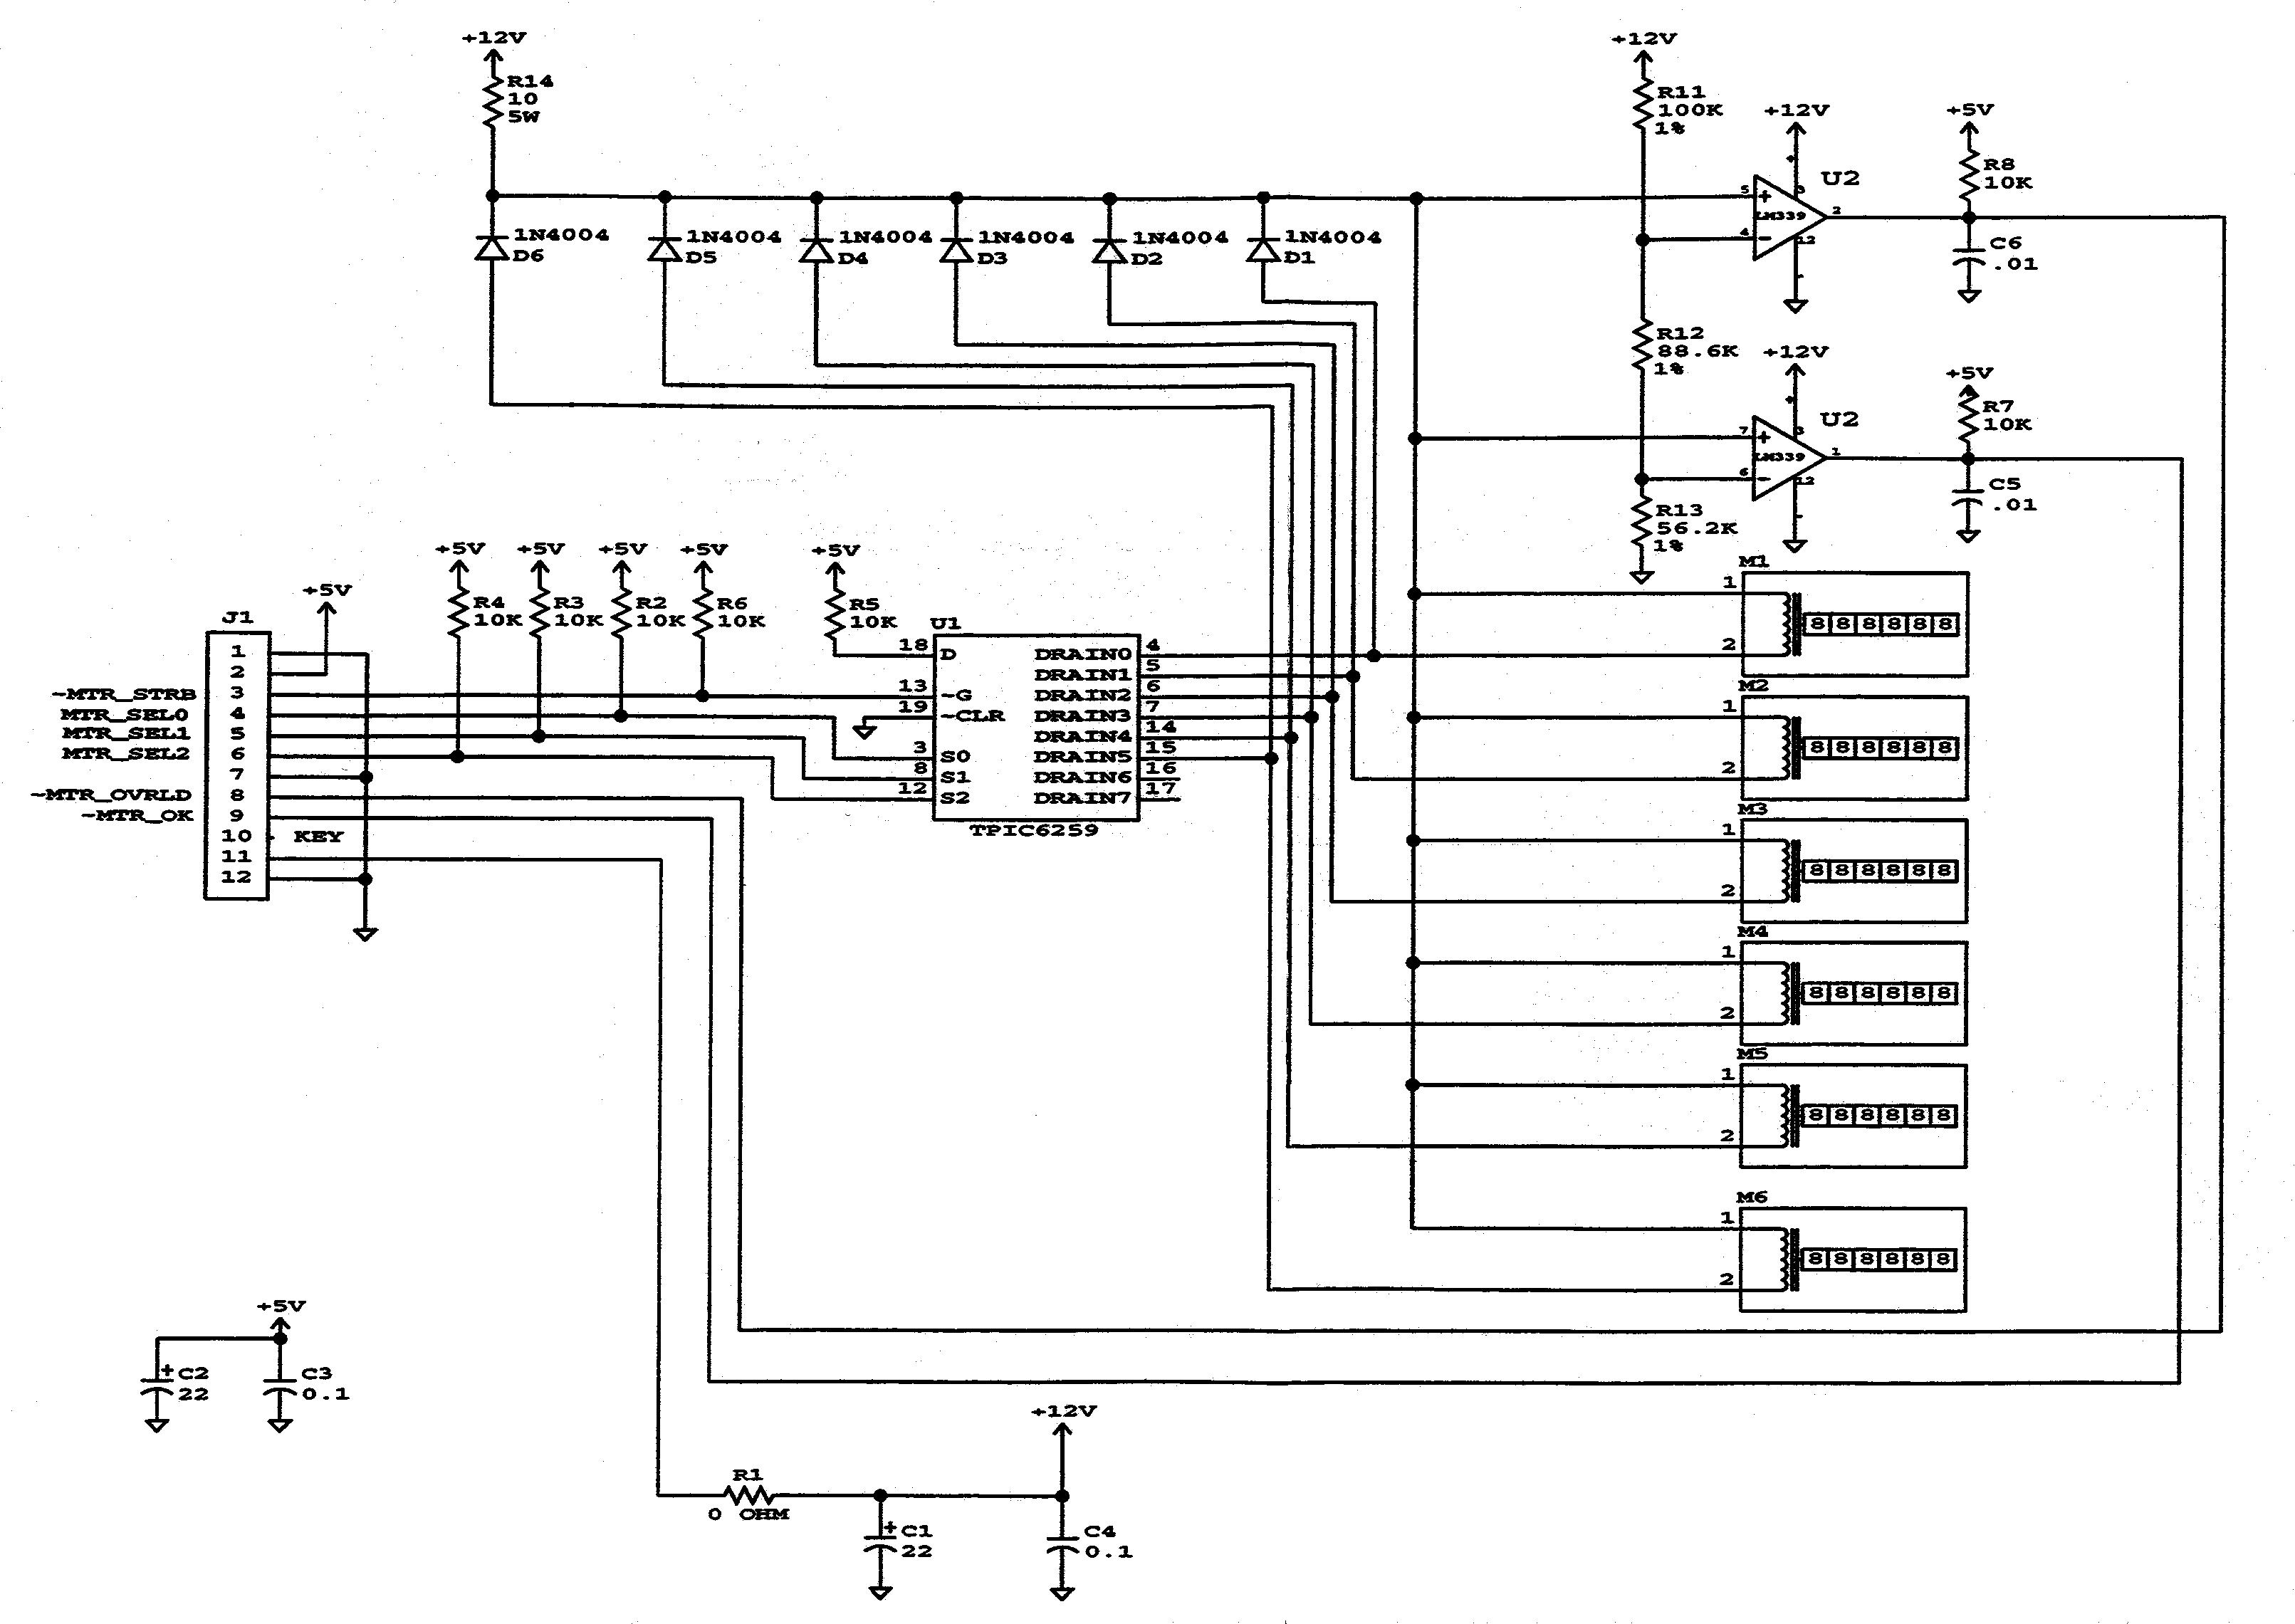 Ic 7483 Circuit Layout Diagram Excellent Electrical Wiring Diagram